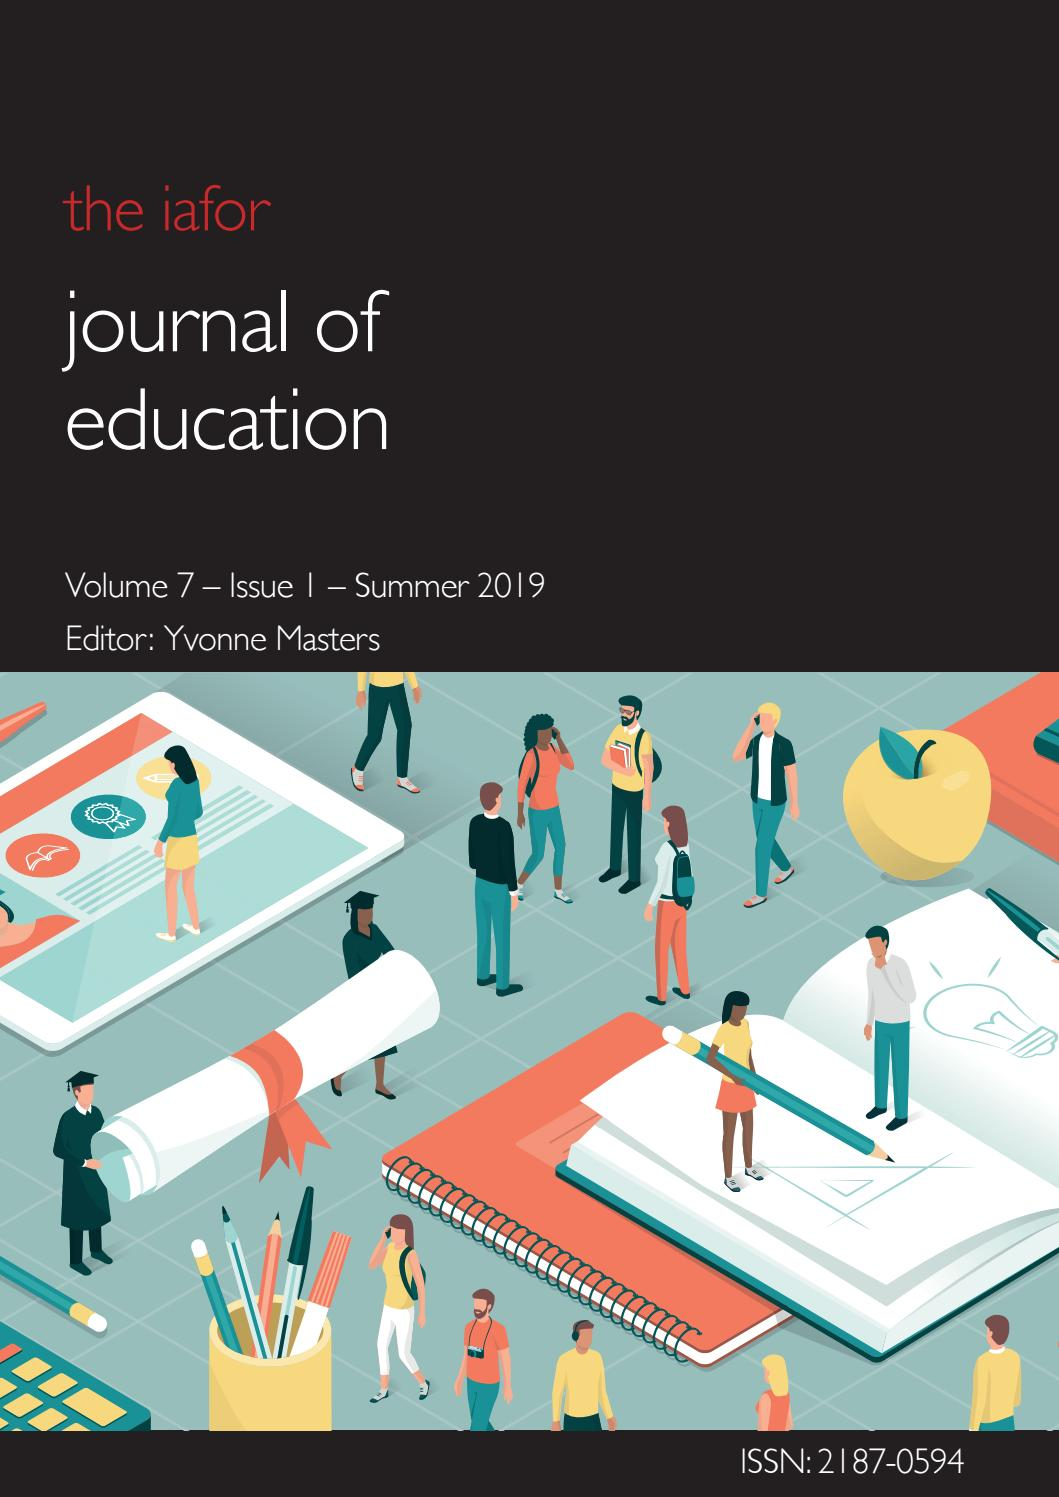 IAFOR Journal of Education Volume 7 – Issue 1 – Summer 2019